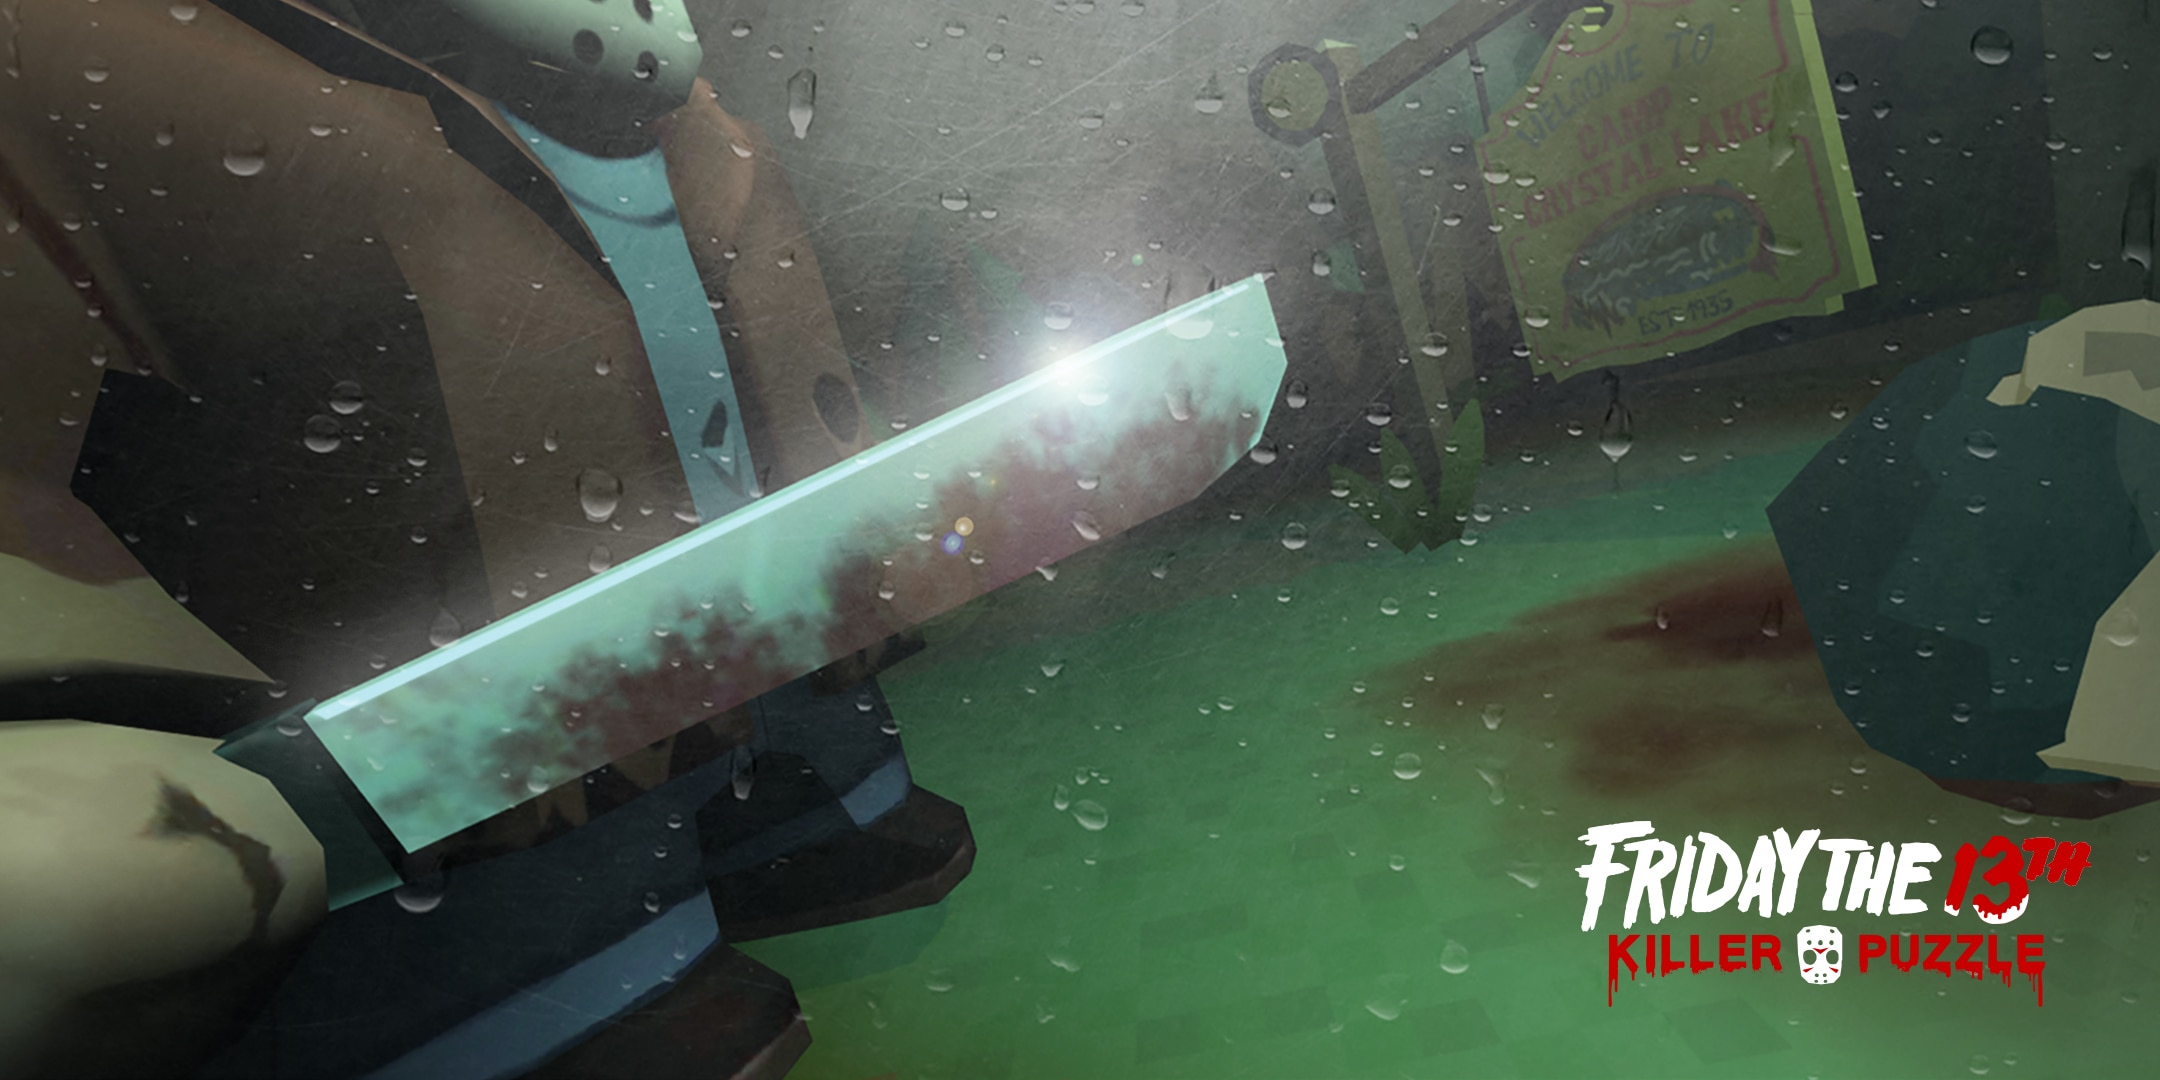 friday the 13th killer puzzle 5 - Friday the 13th: Killer Puzzle Coming from Slayaway Camp Creators; Exclusive: Developer Jason Kapalka Speaks!